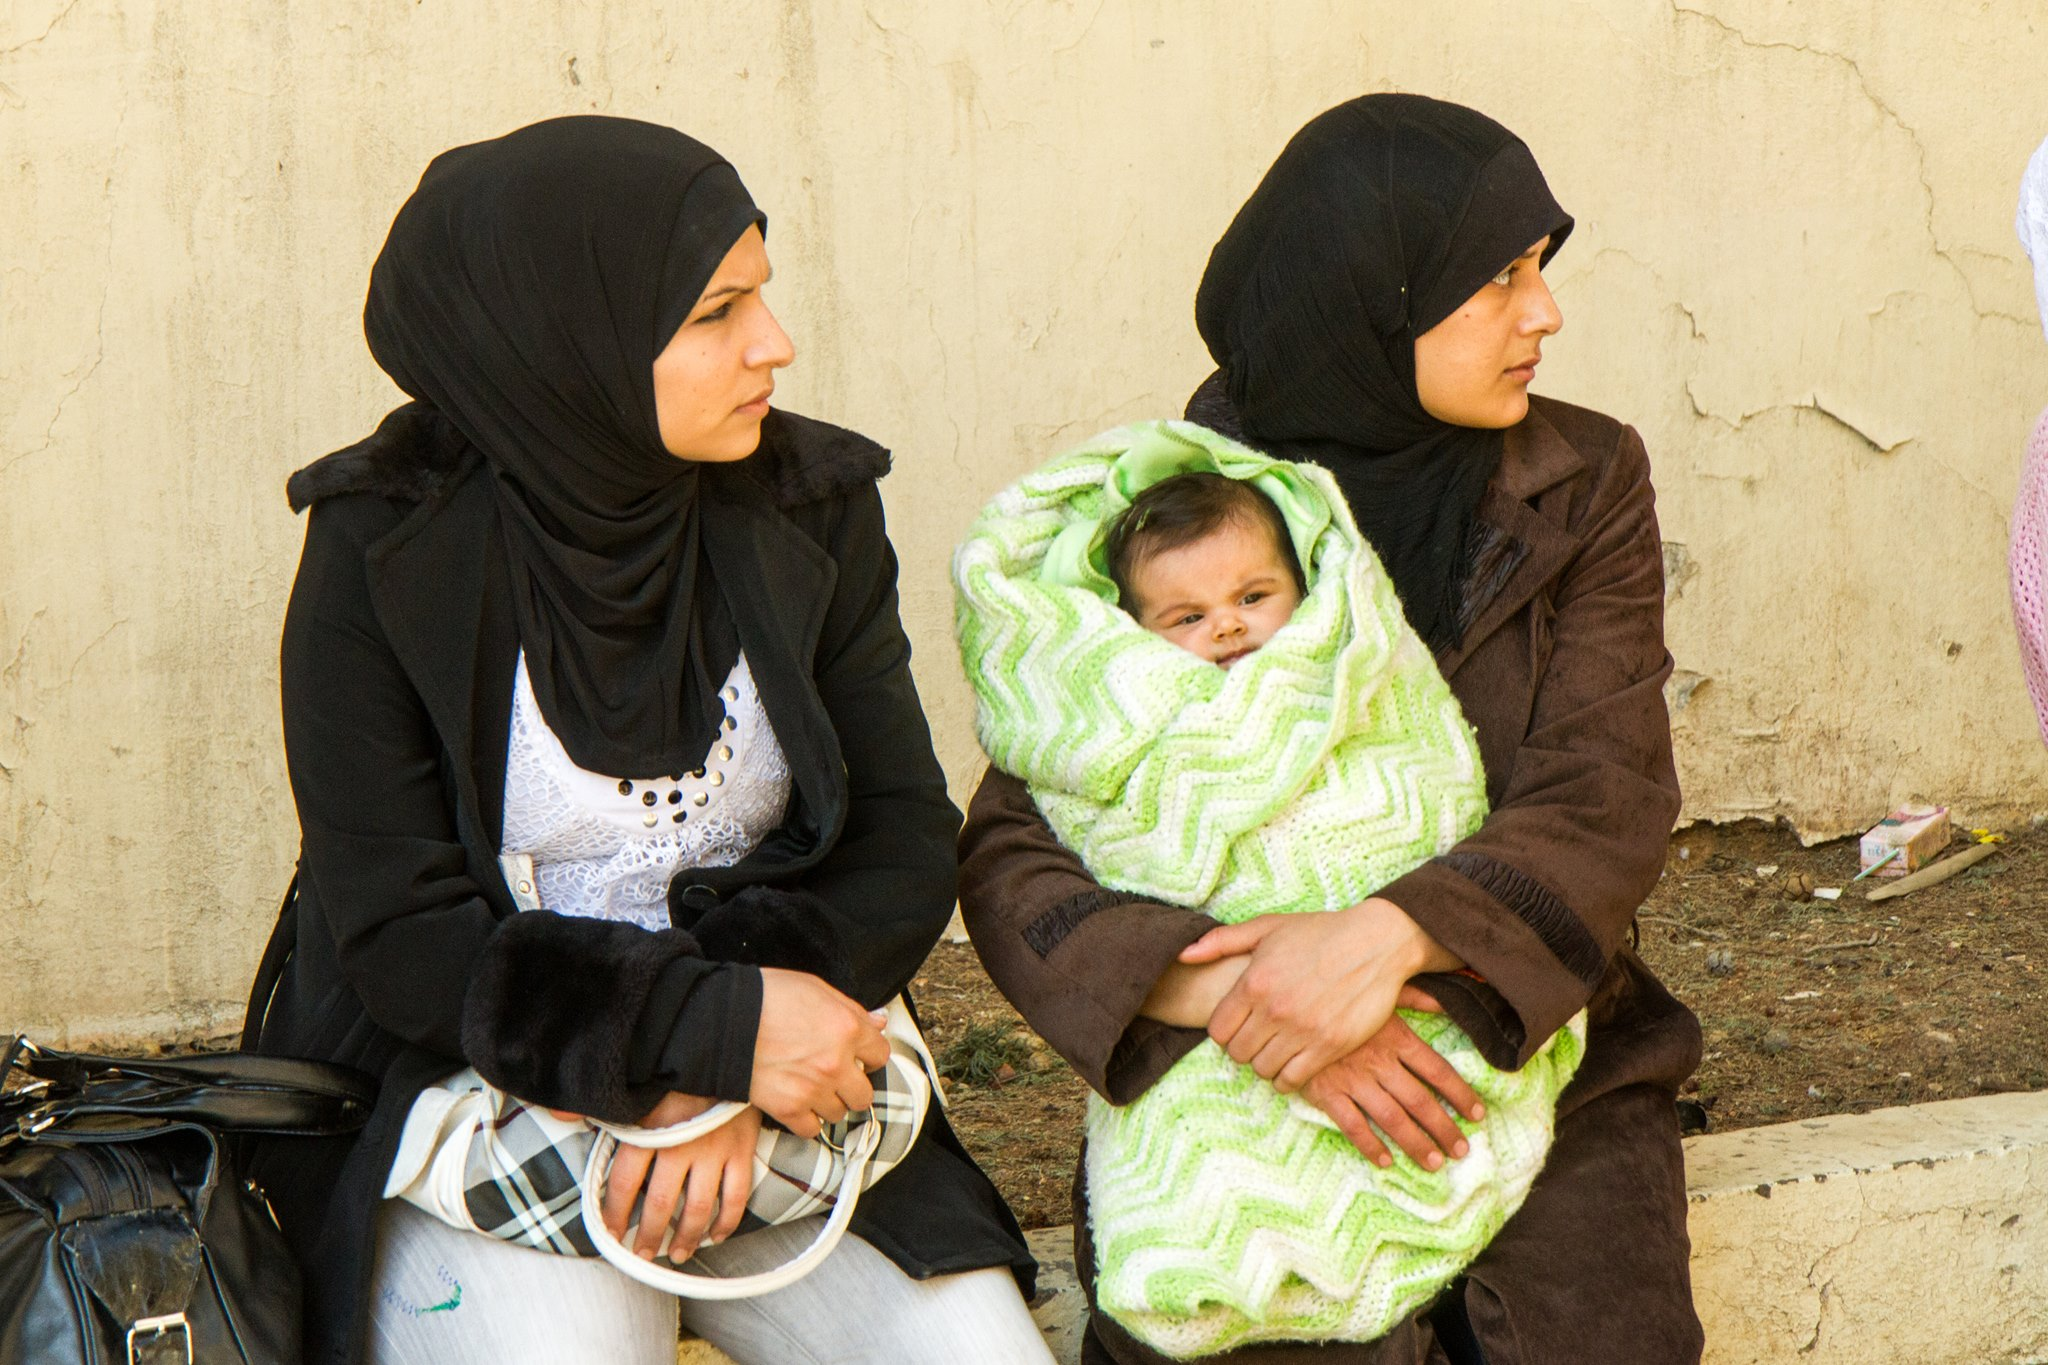 Syrian refugees finding peace a scarce commodity